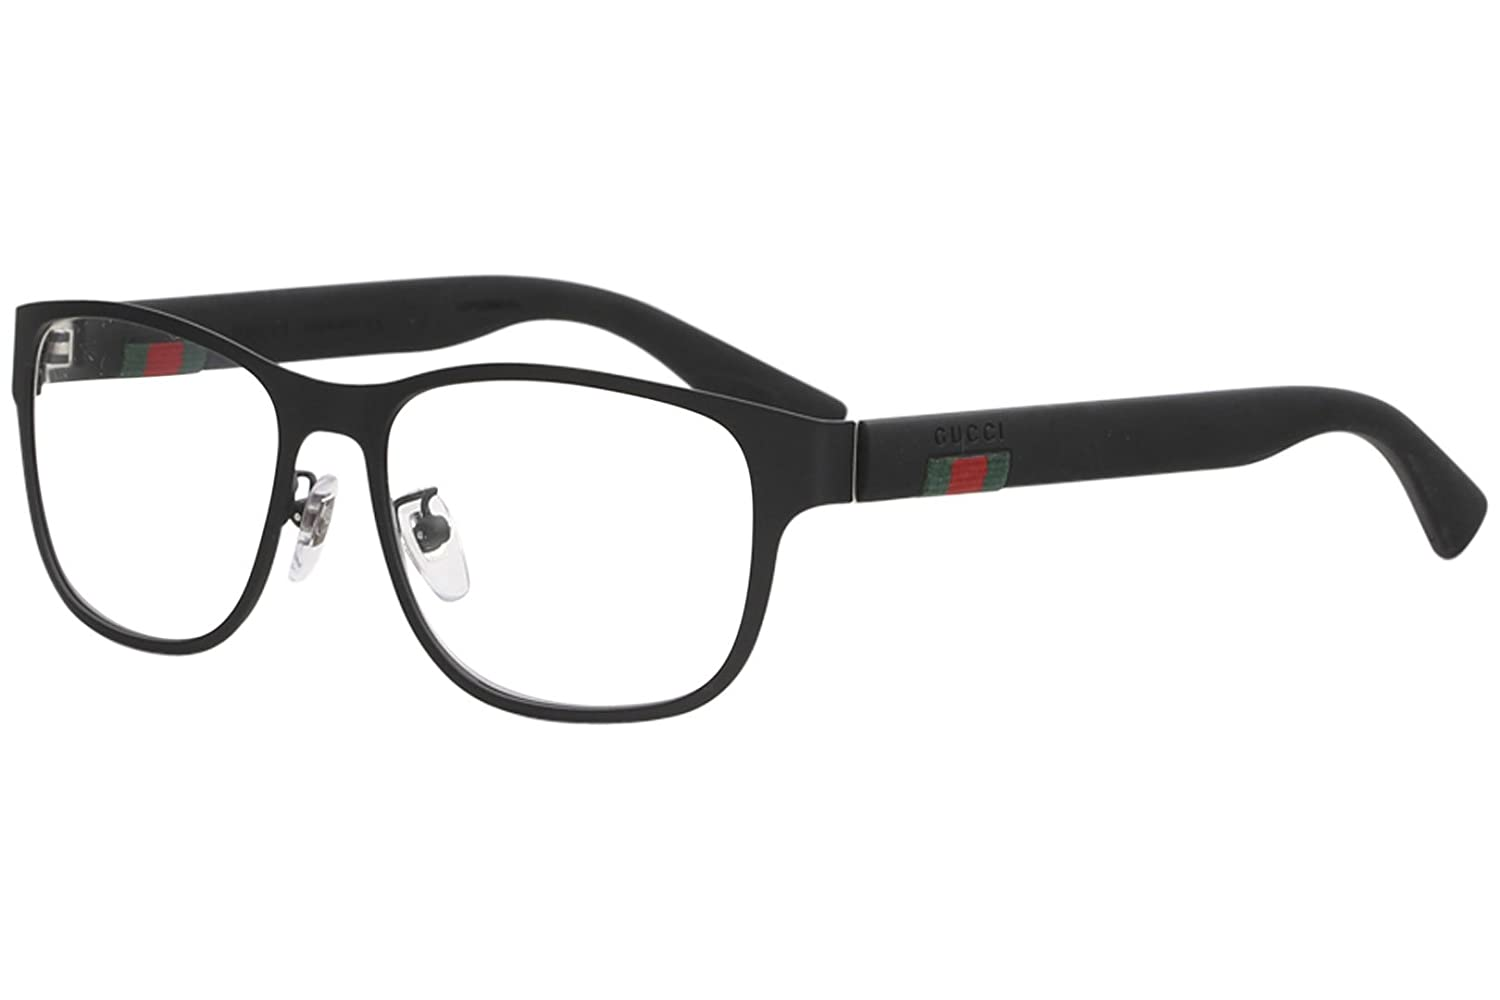 Gucci GG 0013O Metal Square Eyeglasses 55mm